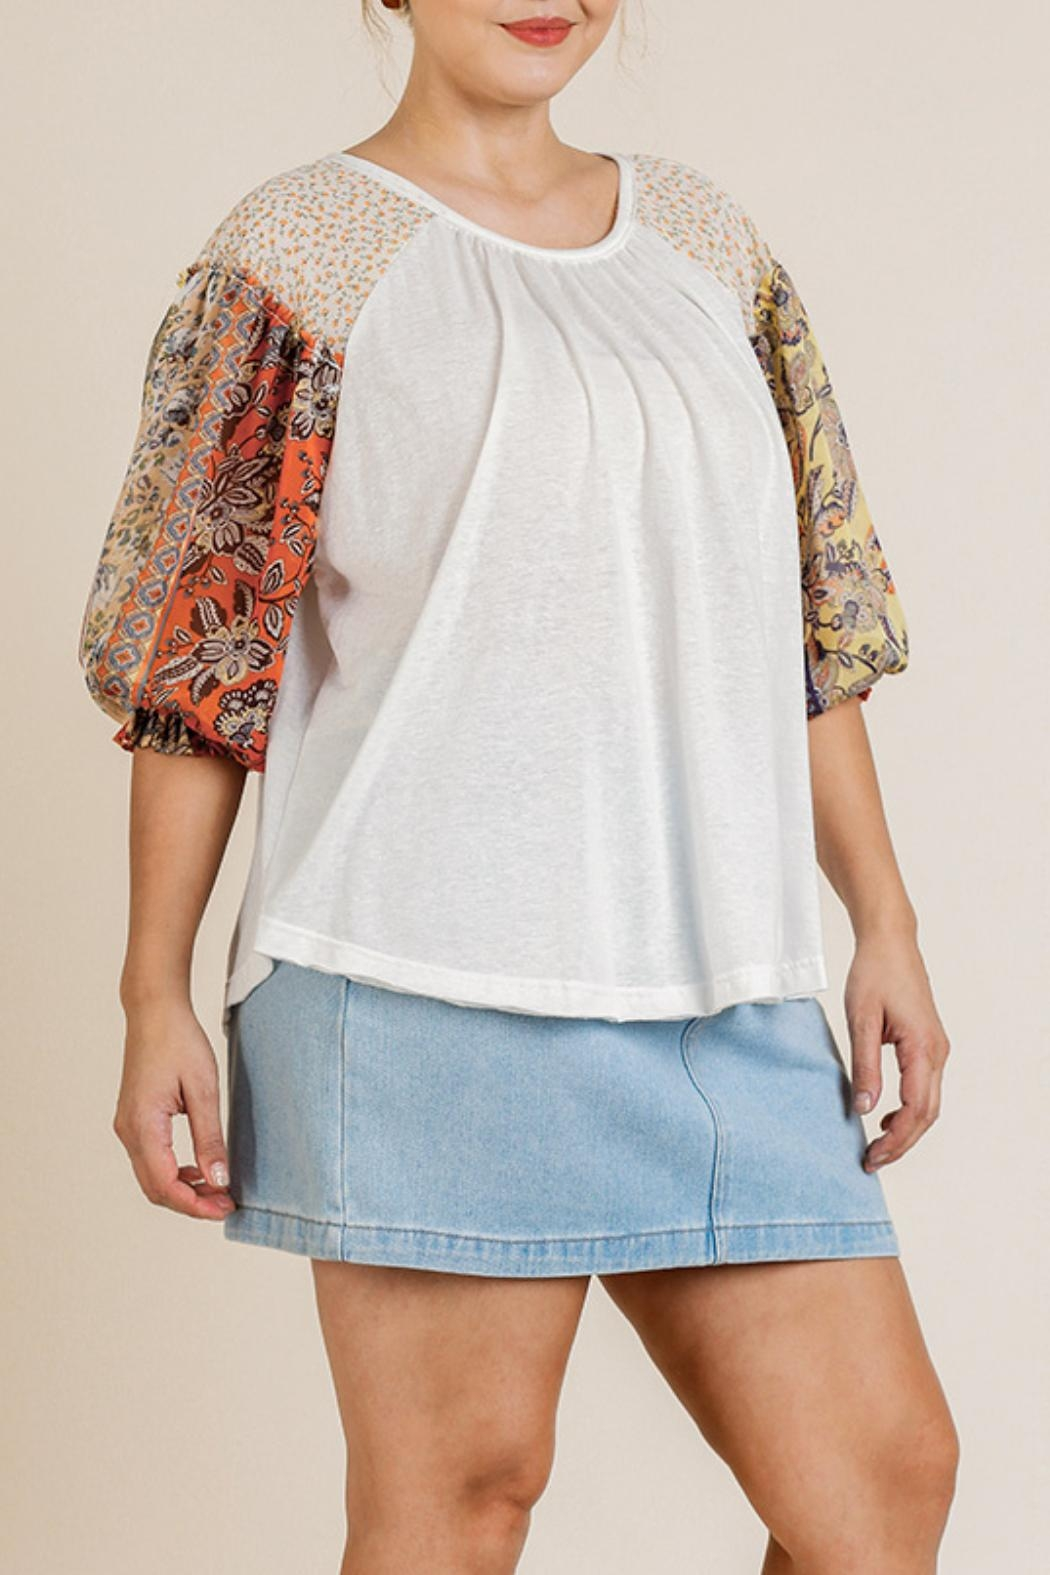 Umgee USA Sheer Puff-Sleeve Top - Main Image